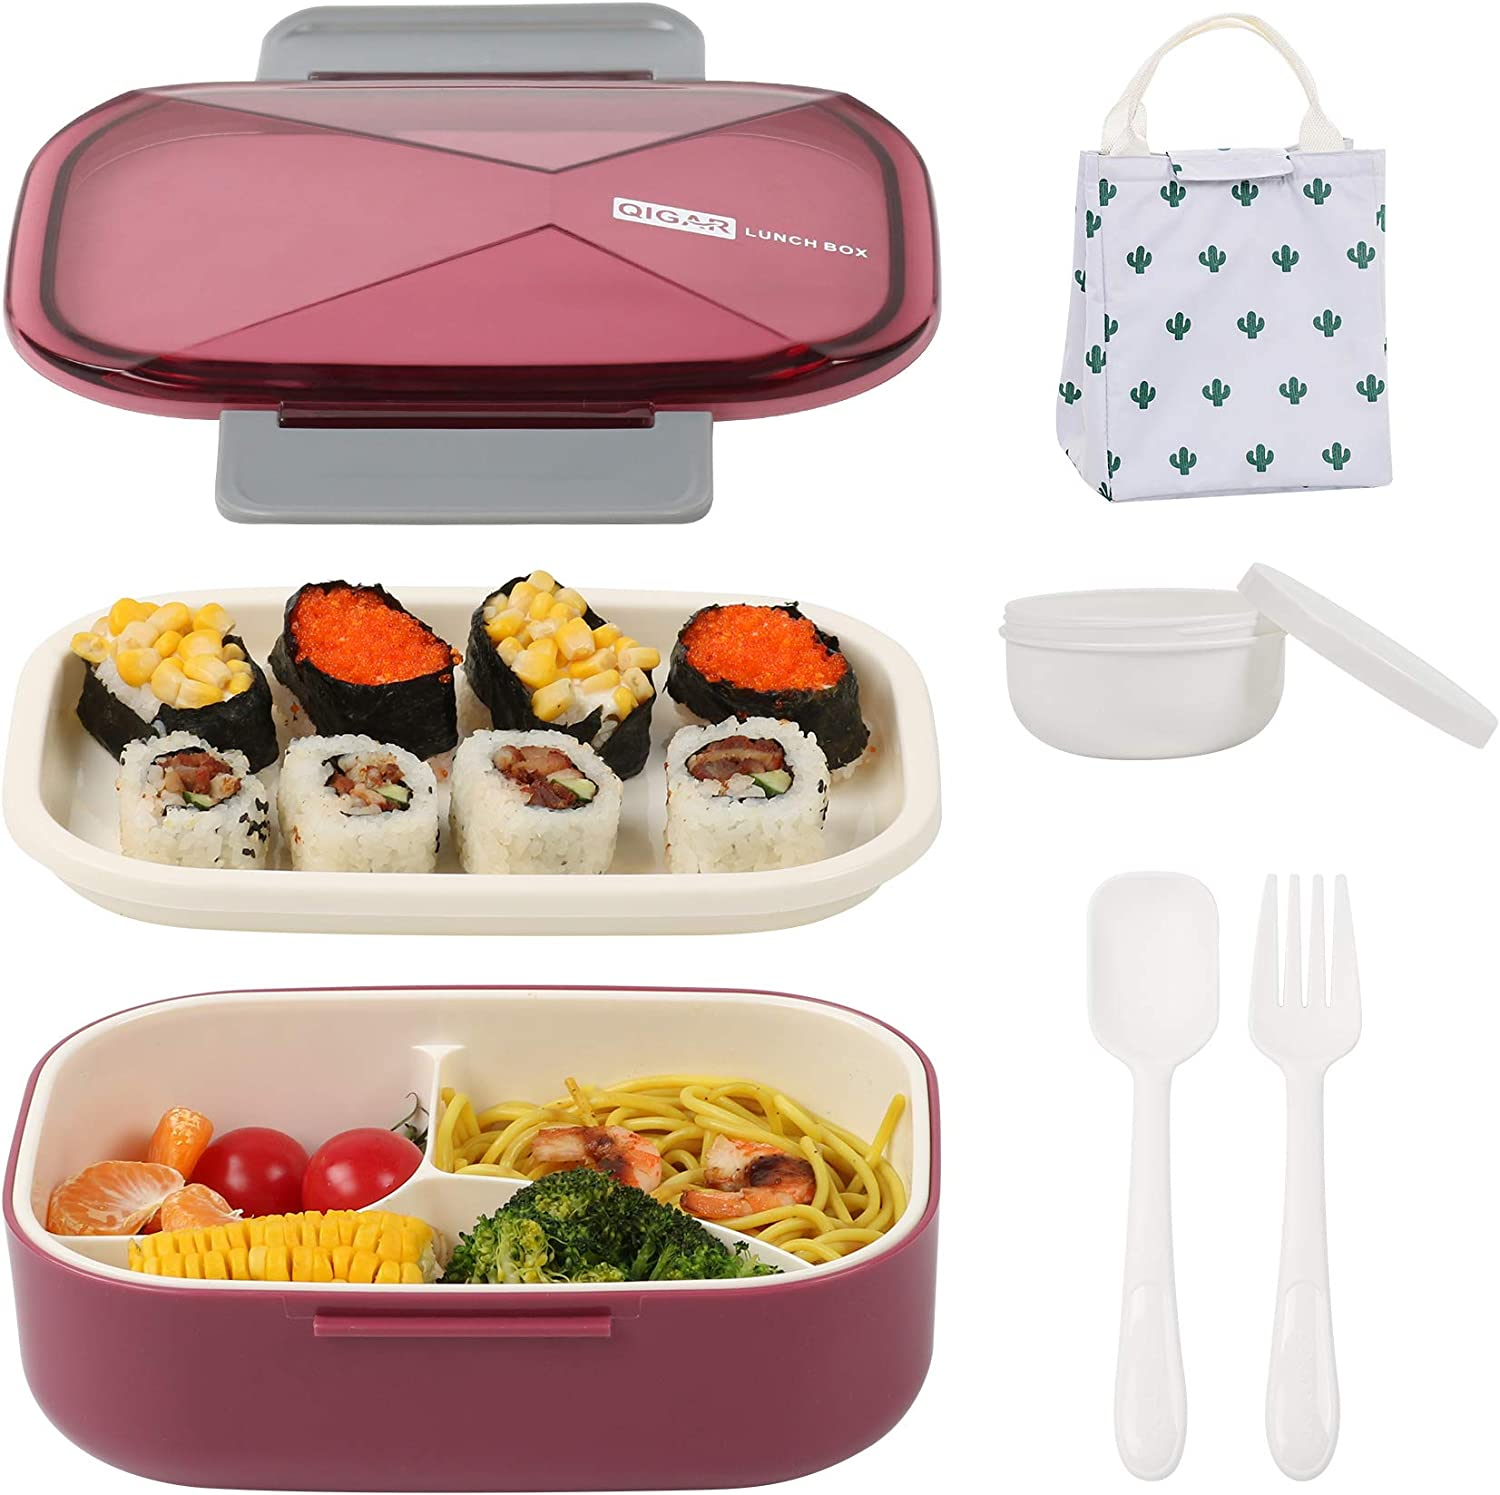 Bento Boxes for Adults and Kids with Lunch Bag, Large Capacity Leak-Proof Bento Lunch Box,2 Tires and 3-In-1 Compartment Meal Containers and Utensil Set,Built-in Plastic Soup Cup (Wine red)